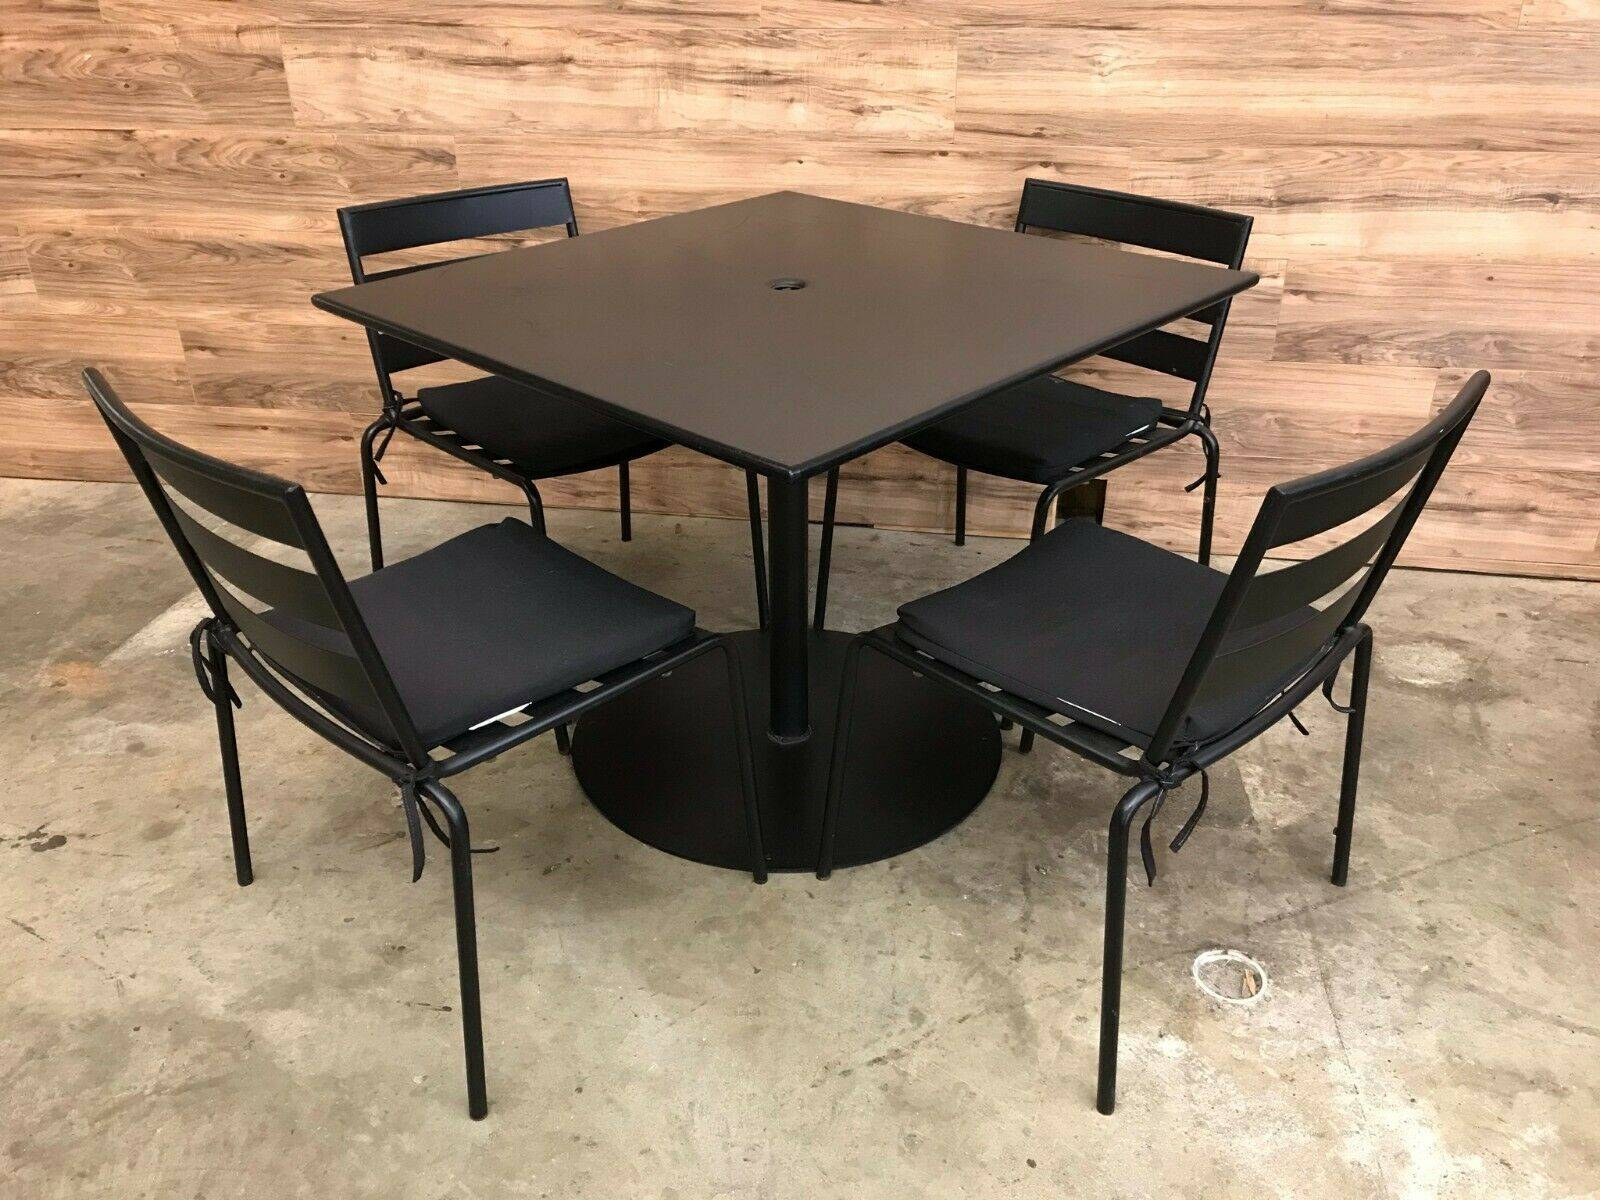 Heavy Duty Black Metal Outdoor Furniture Set Square Table w/ 10 Chairs